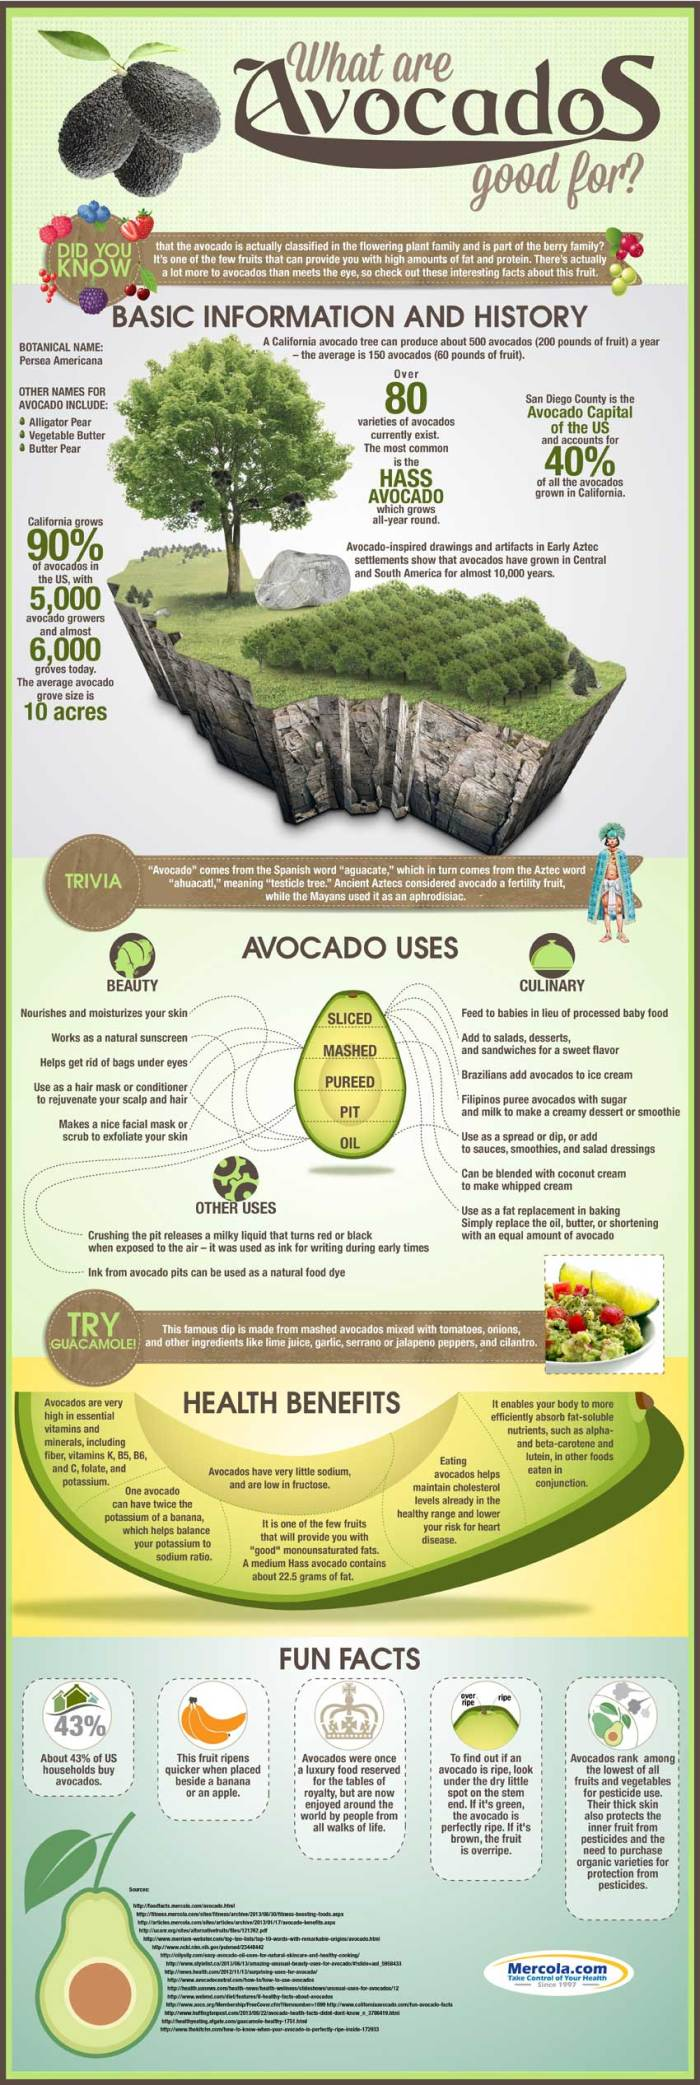 Are avocados healthy? www.tasteofdivine.com